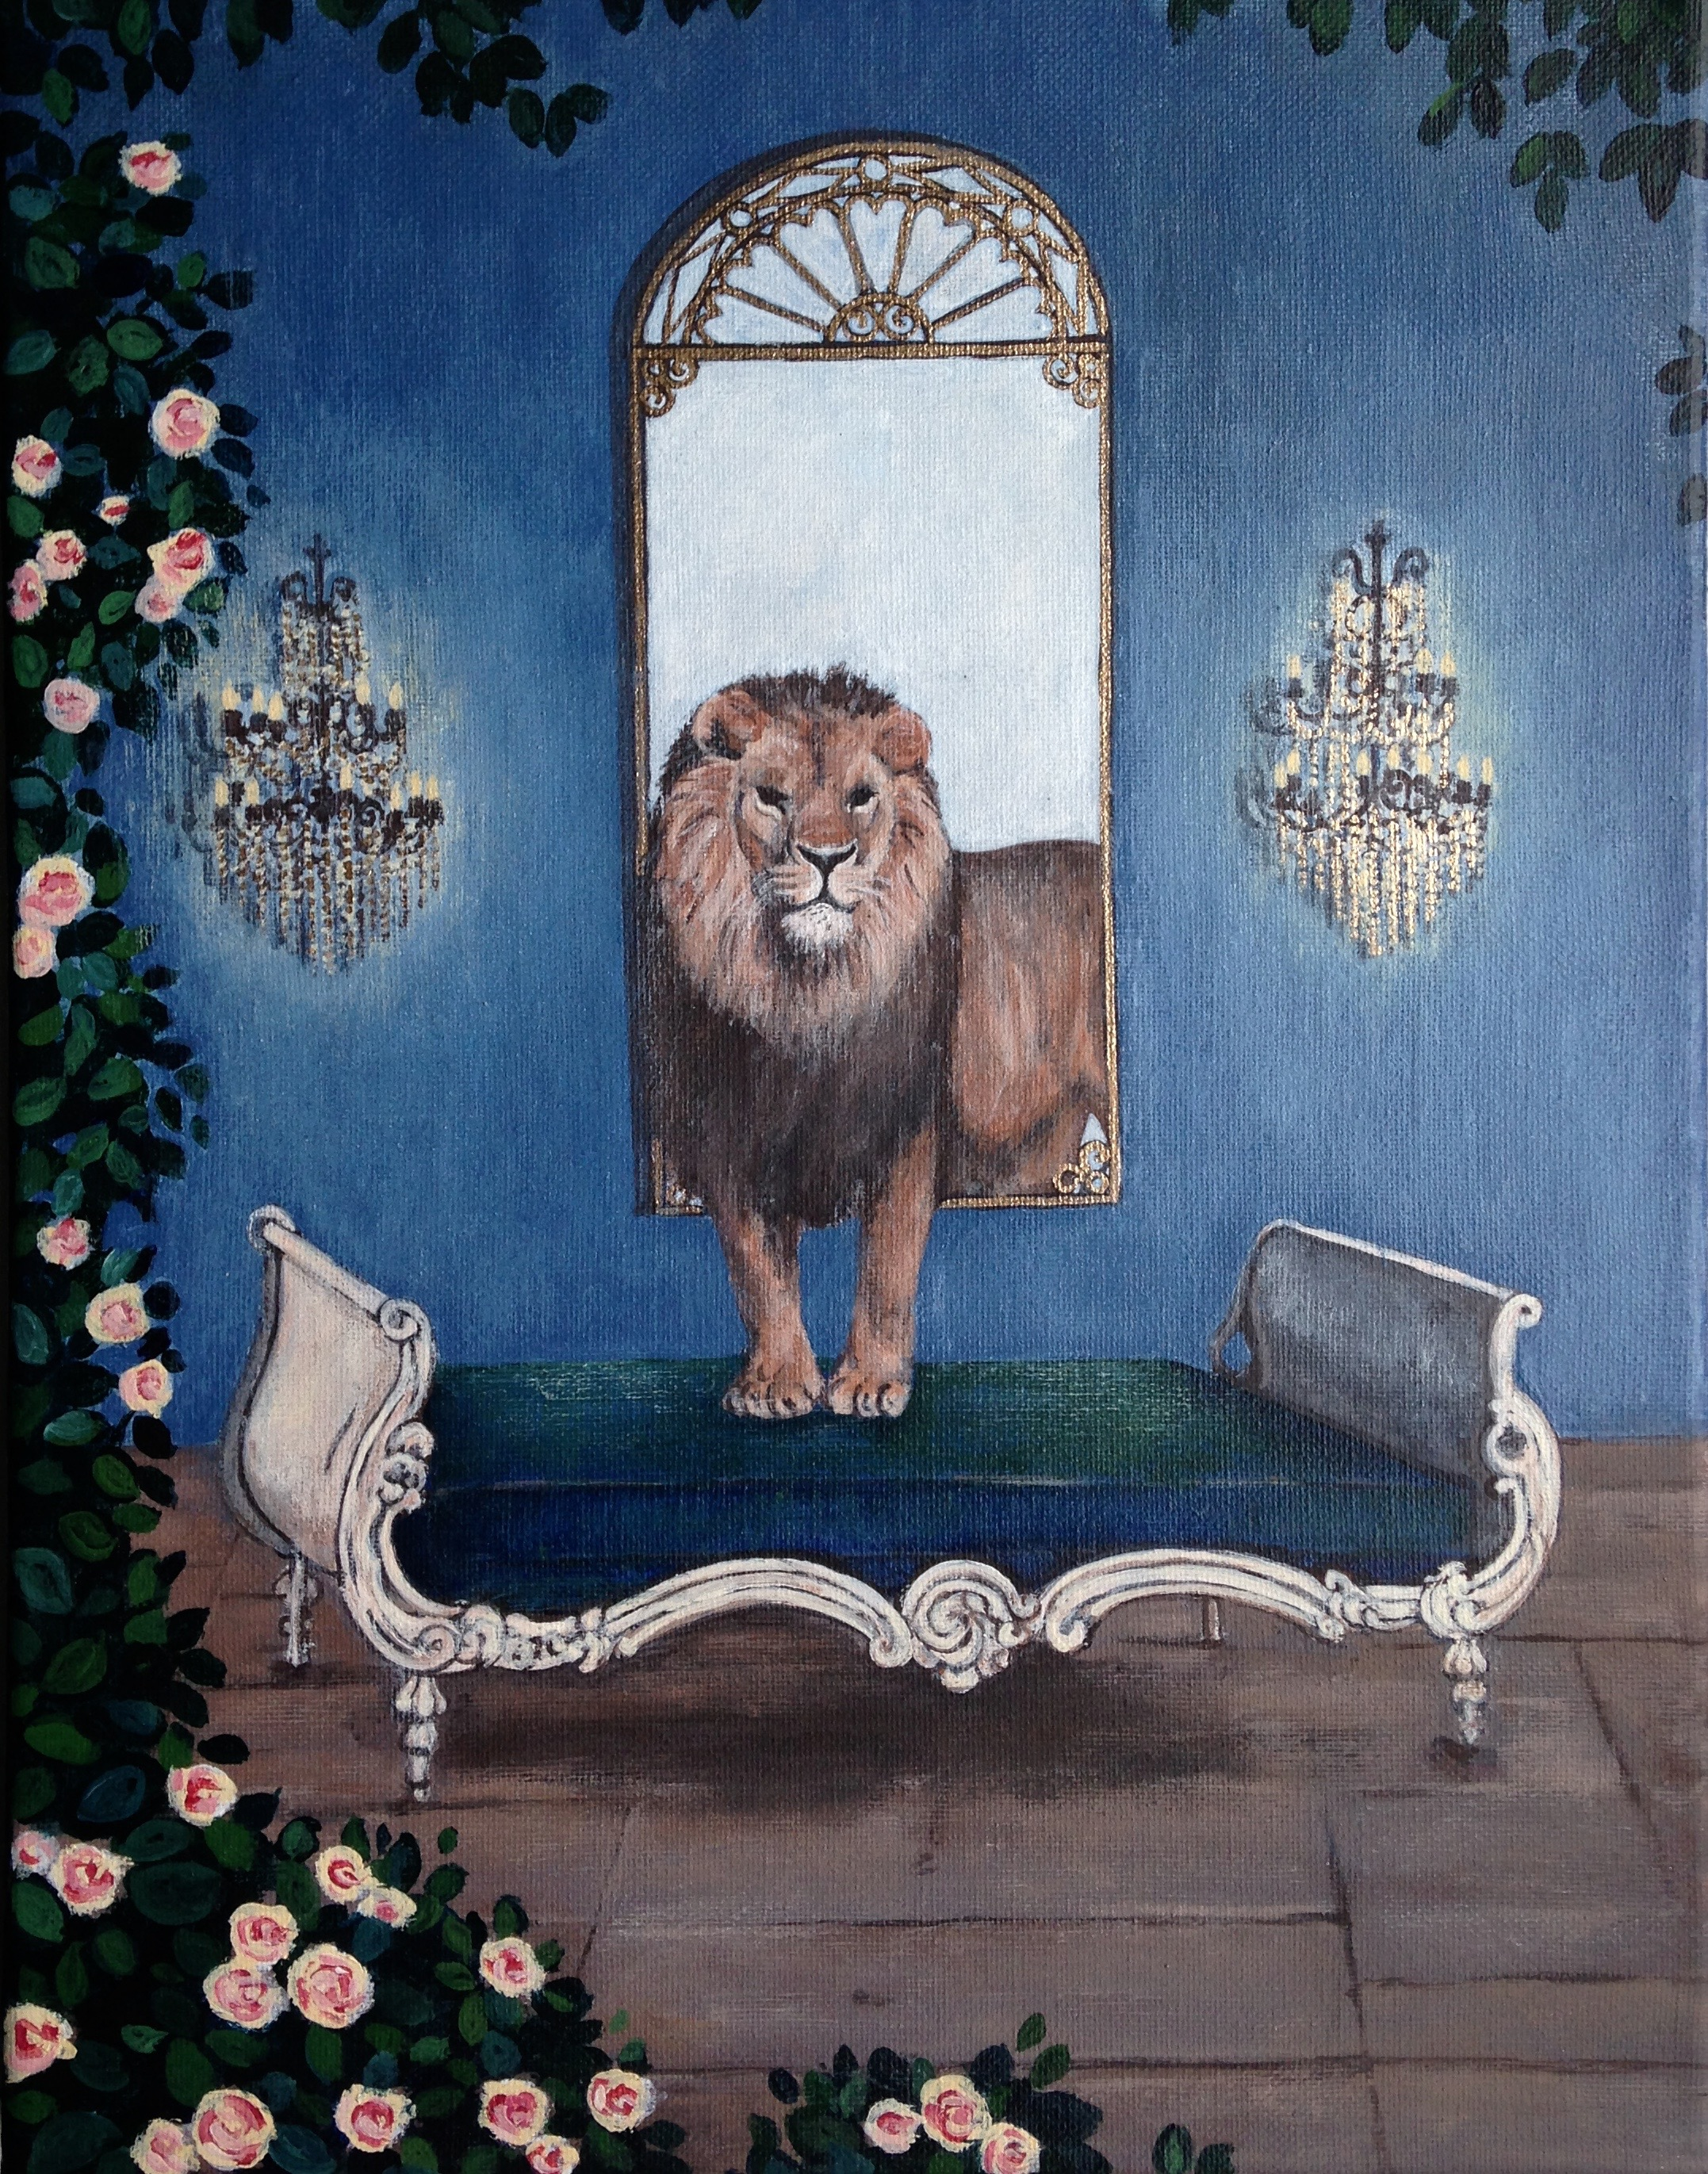 lion and roses, 11''x14'', acrylic on canvas, 2016